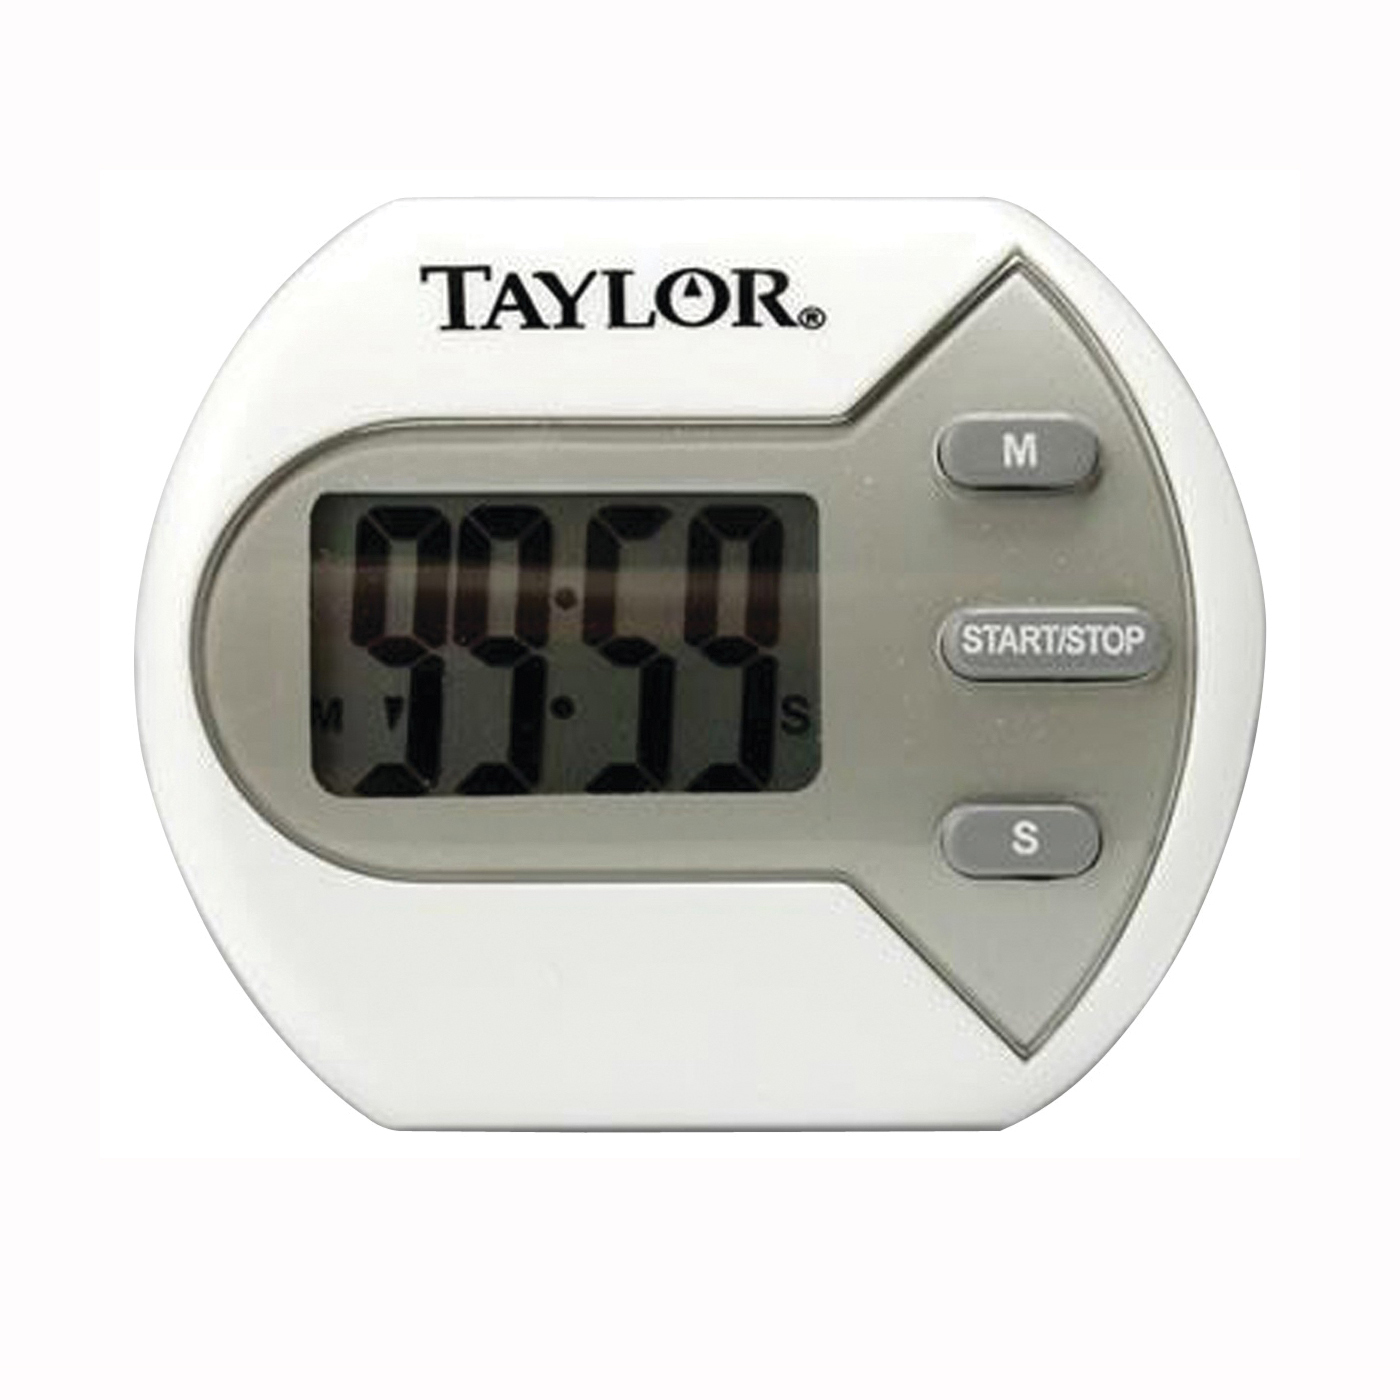 Picture of Taylor 5806 Timer, LCD Display, 99 min, White